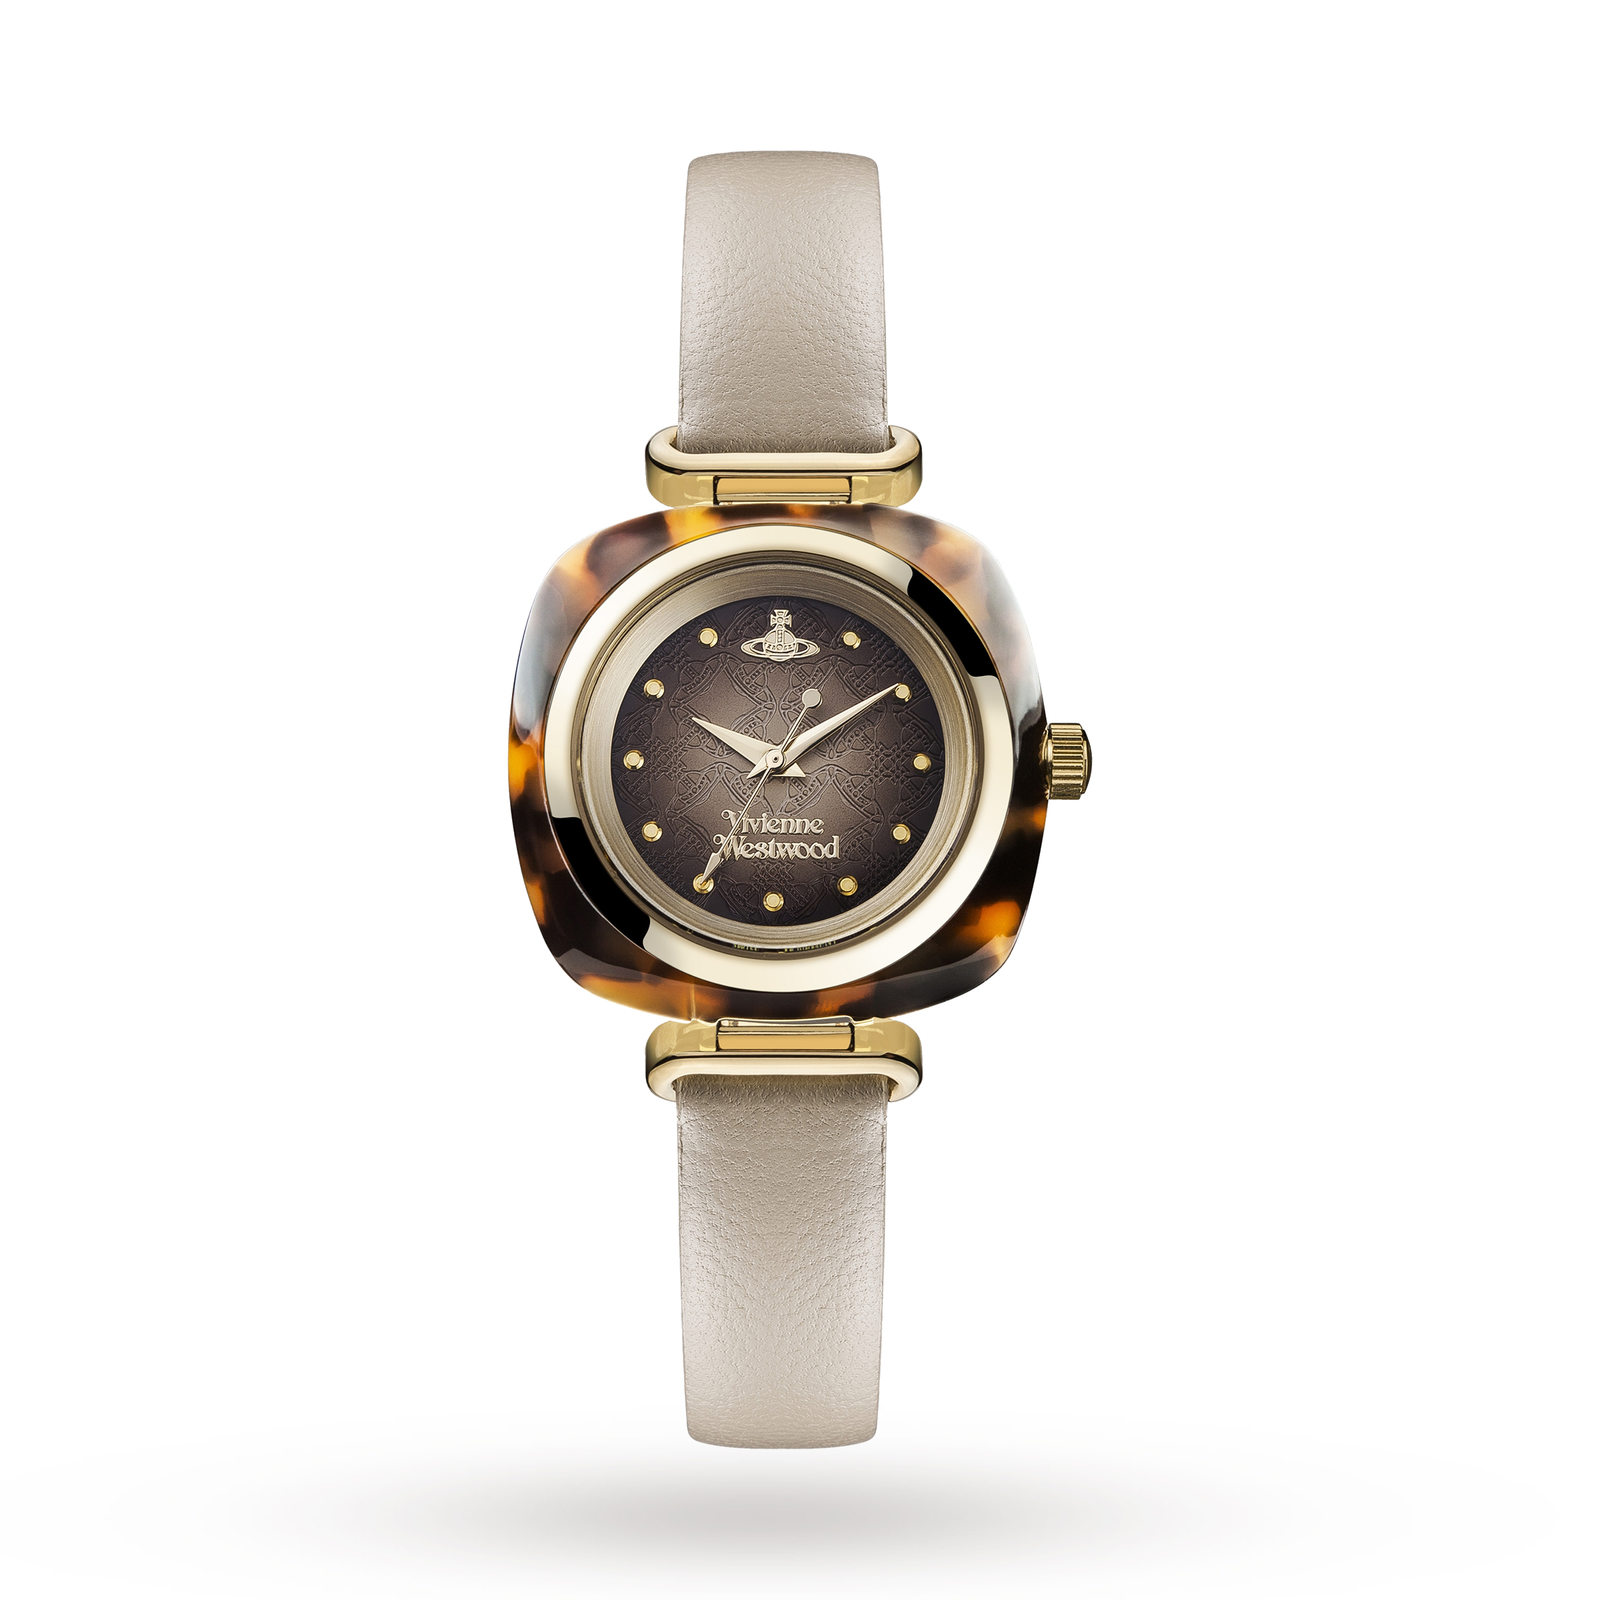 Vivienne Westwood Ladies' Beckton Watch